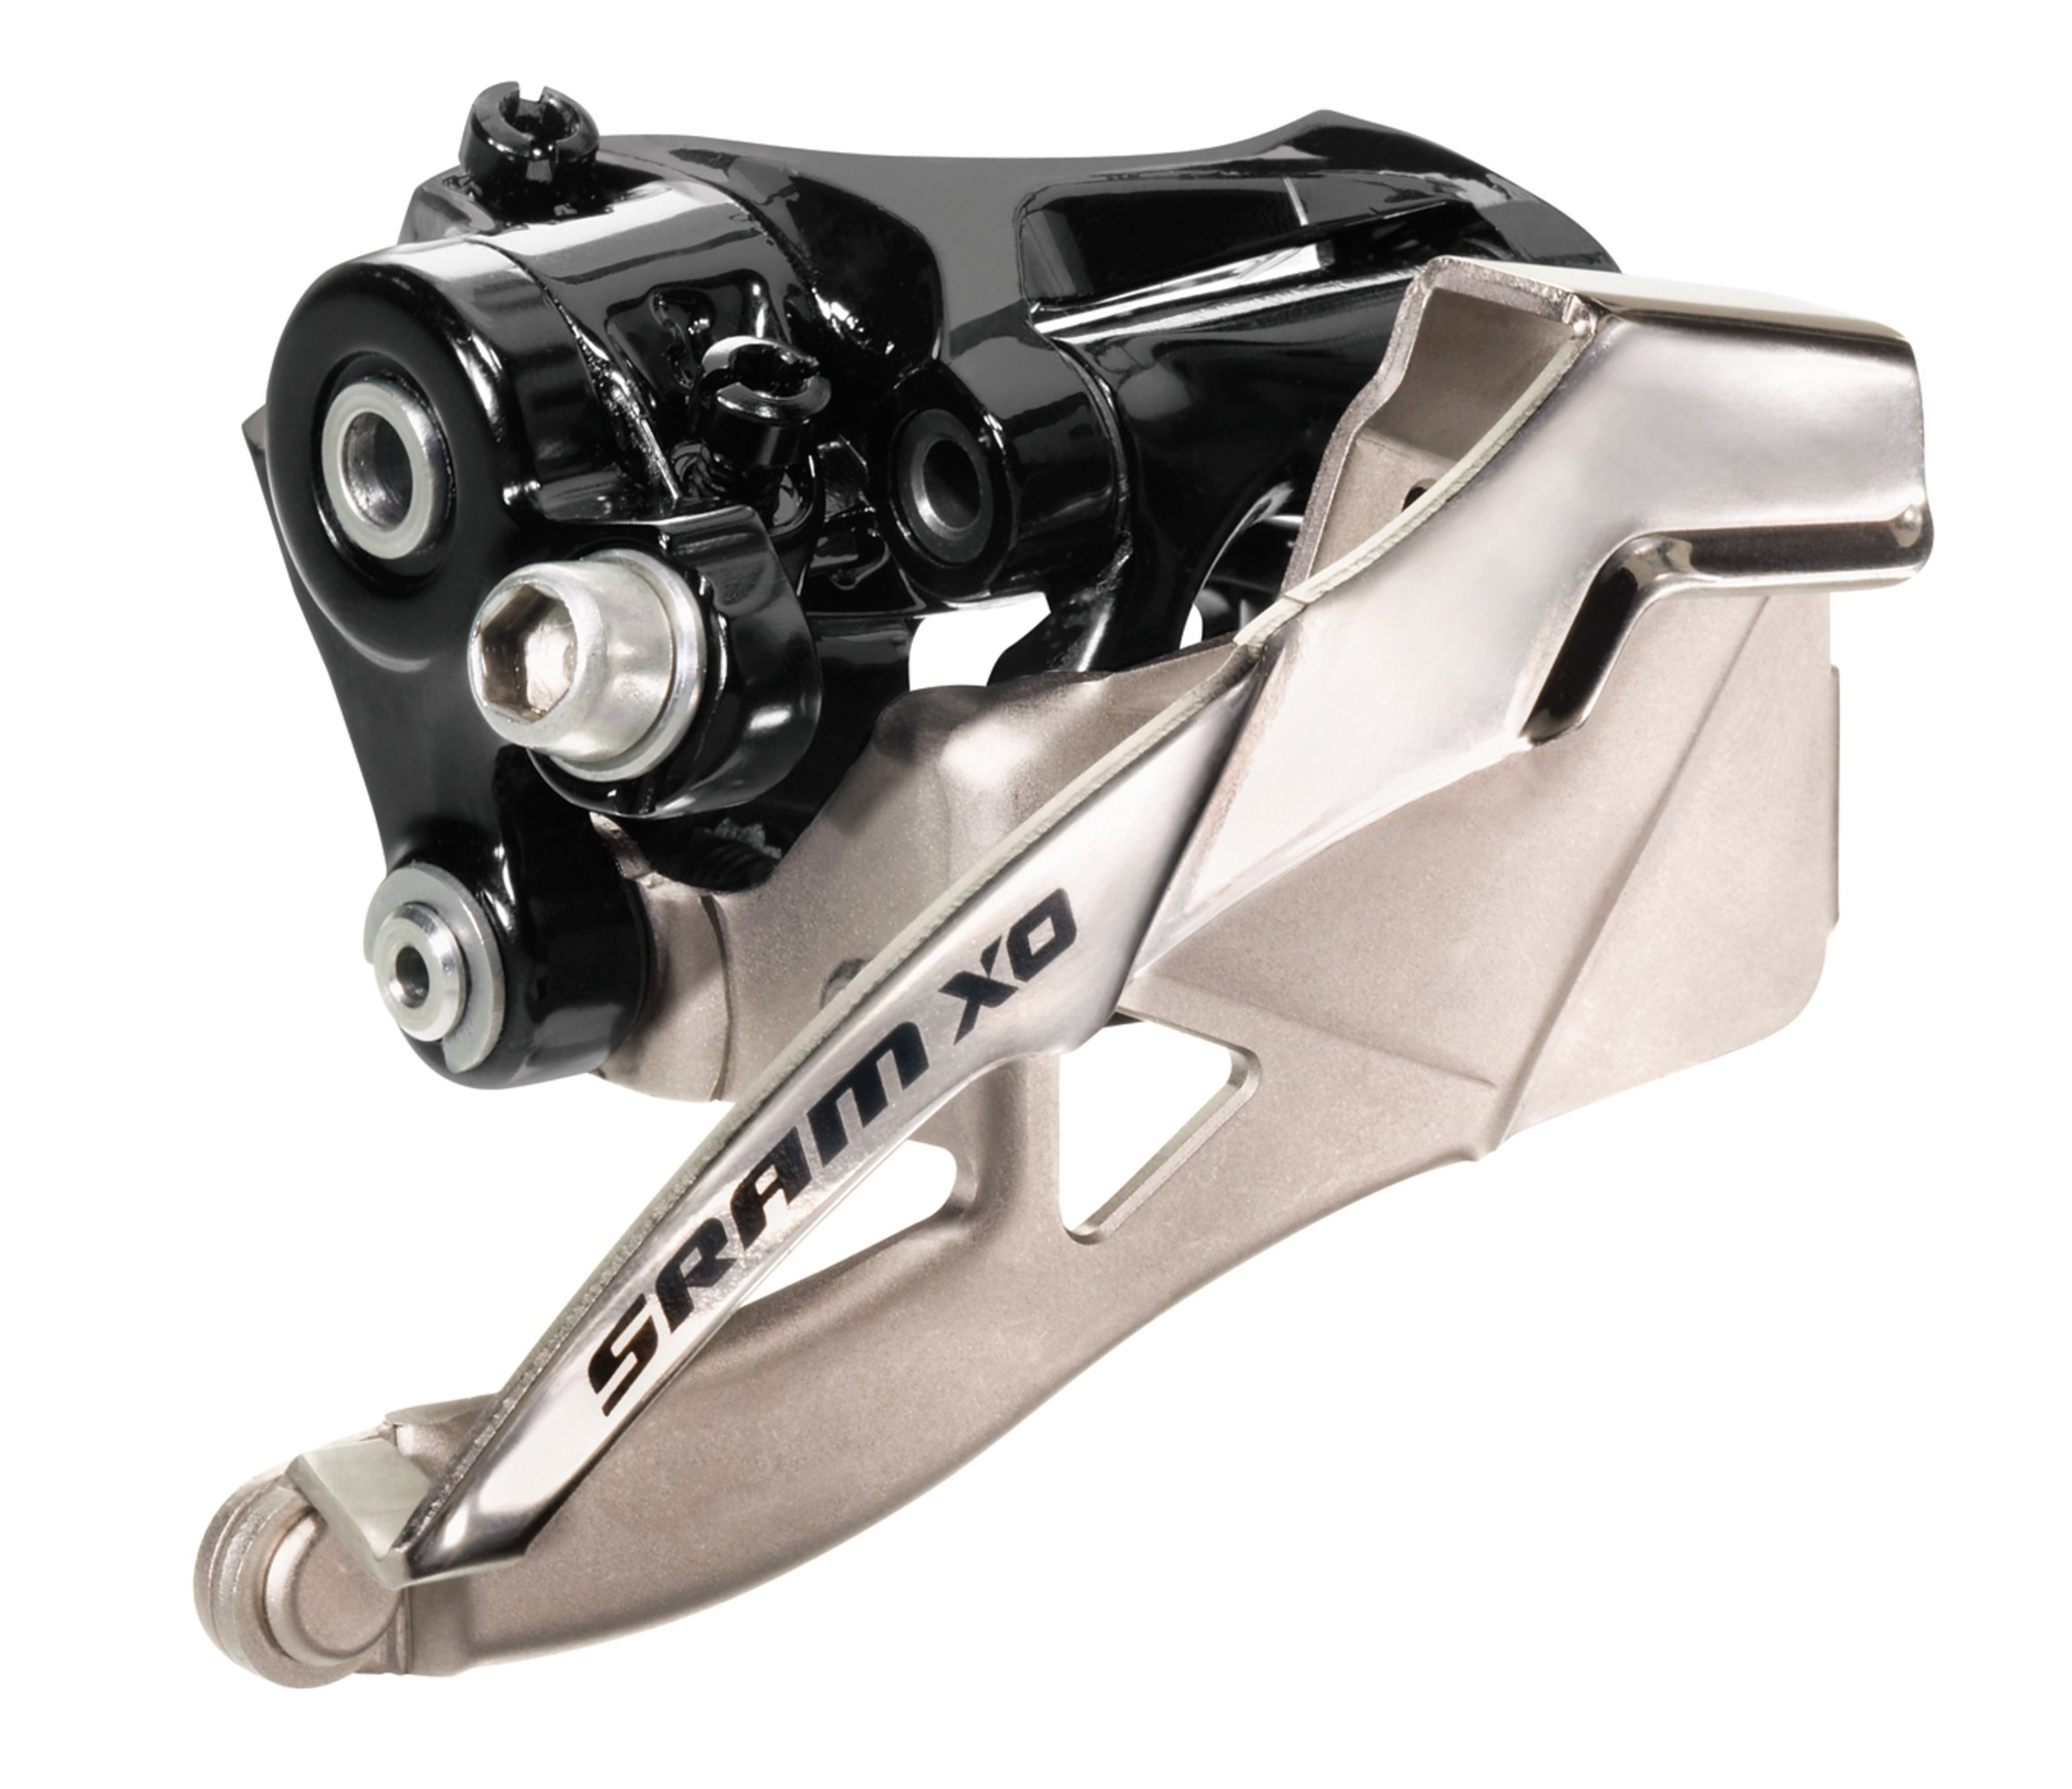 SRAM X.0 2 x 10 Dual 31.8 Front Derailleur High-Clamp by SRAM